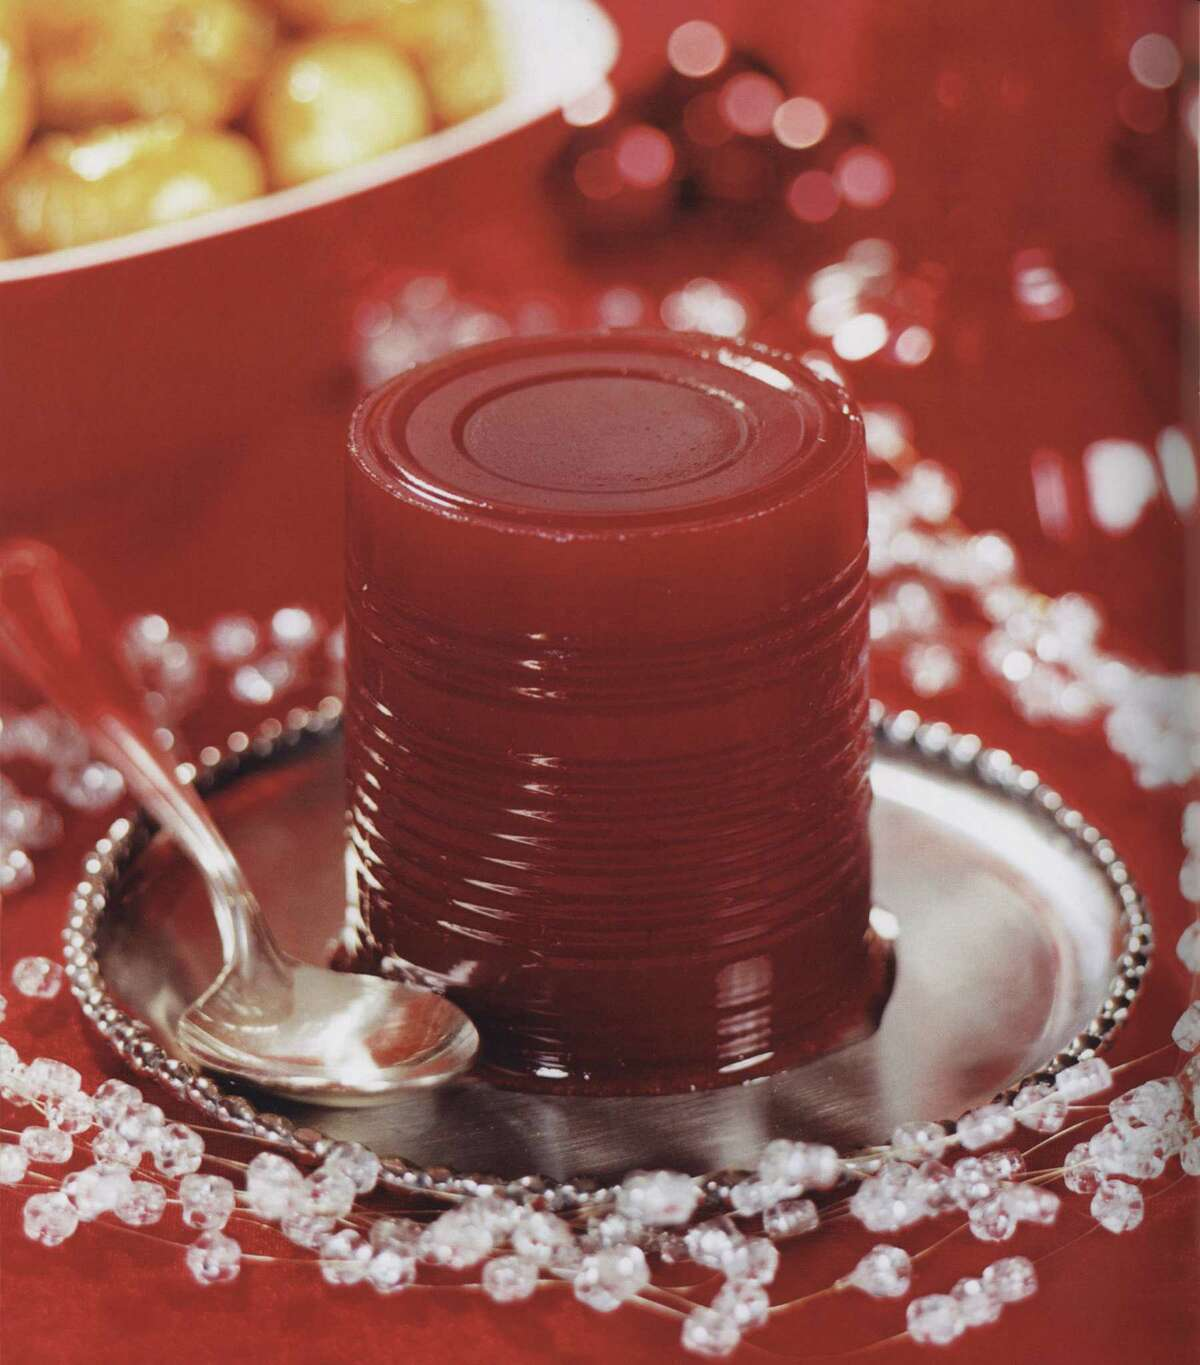 Research shows that most Americans despise canned cranberry sauce.